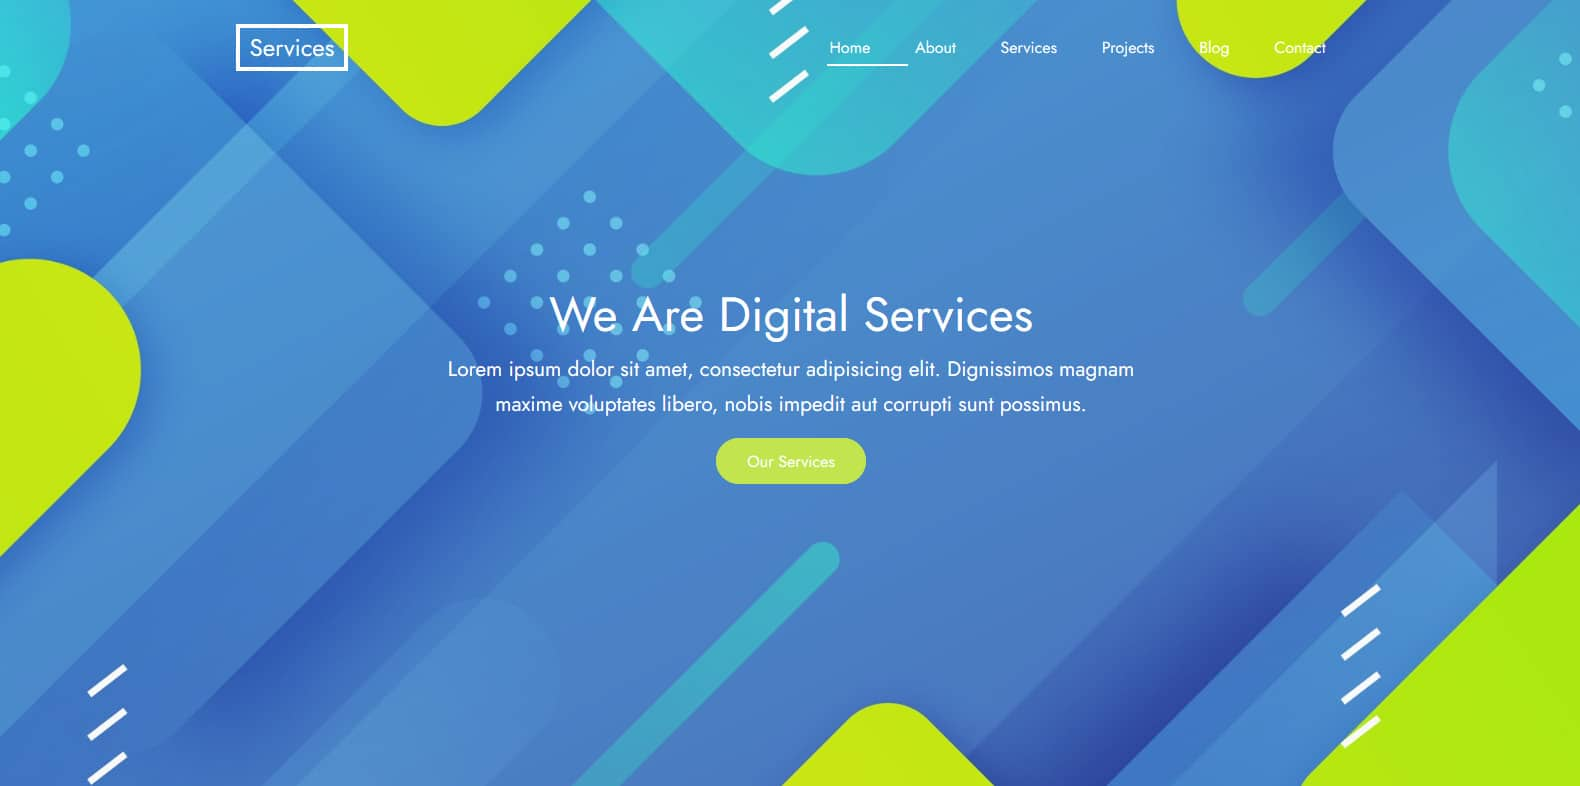 services-business-website-template